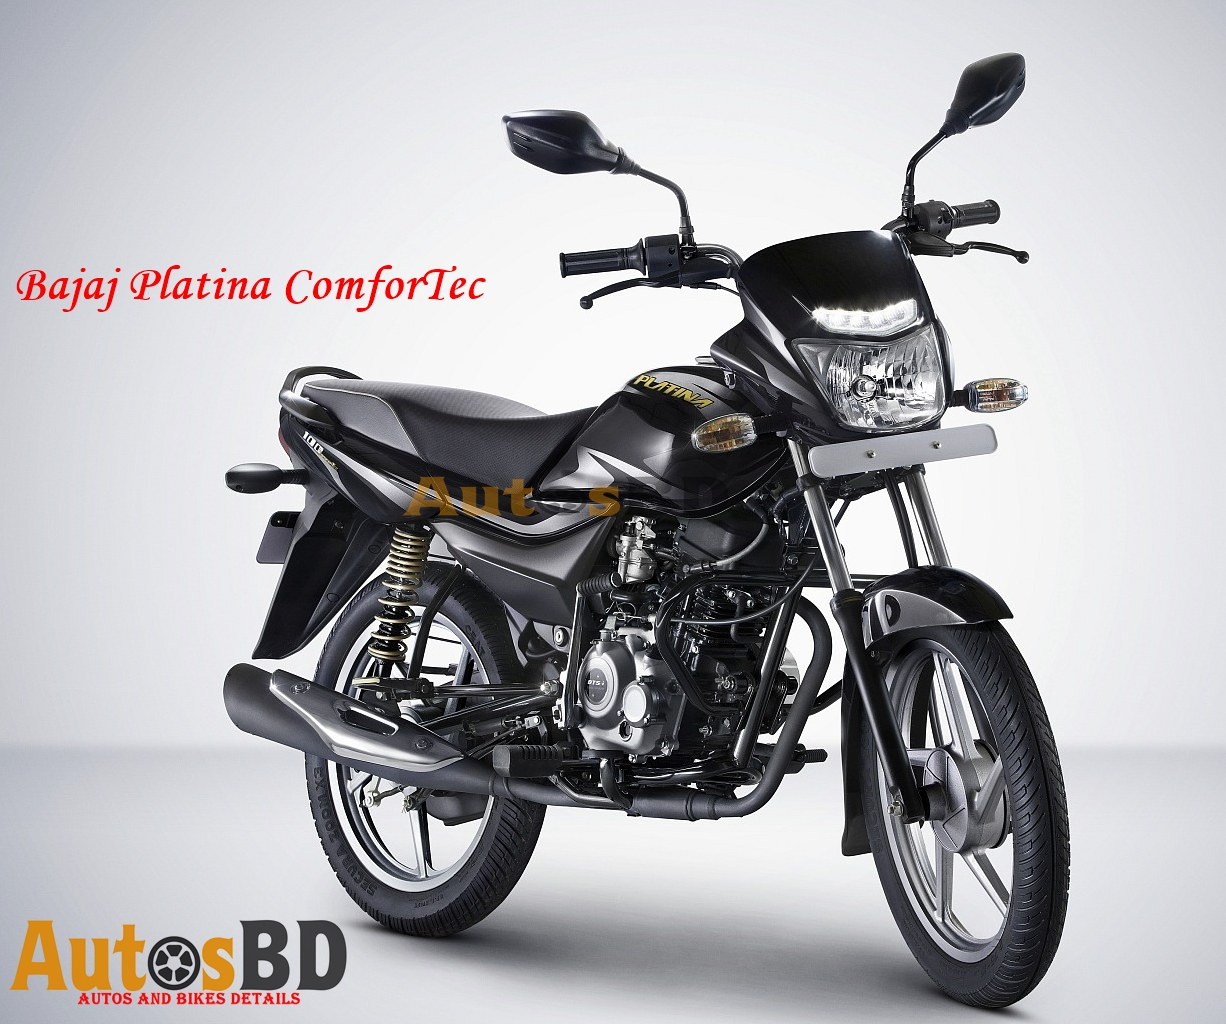 Bajaj Platina 100 ComforTec KS Motorcycle Specification